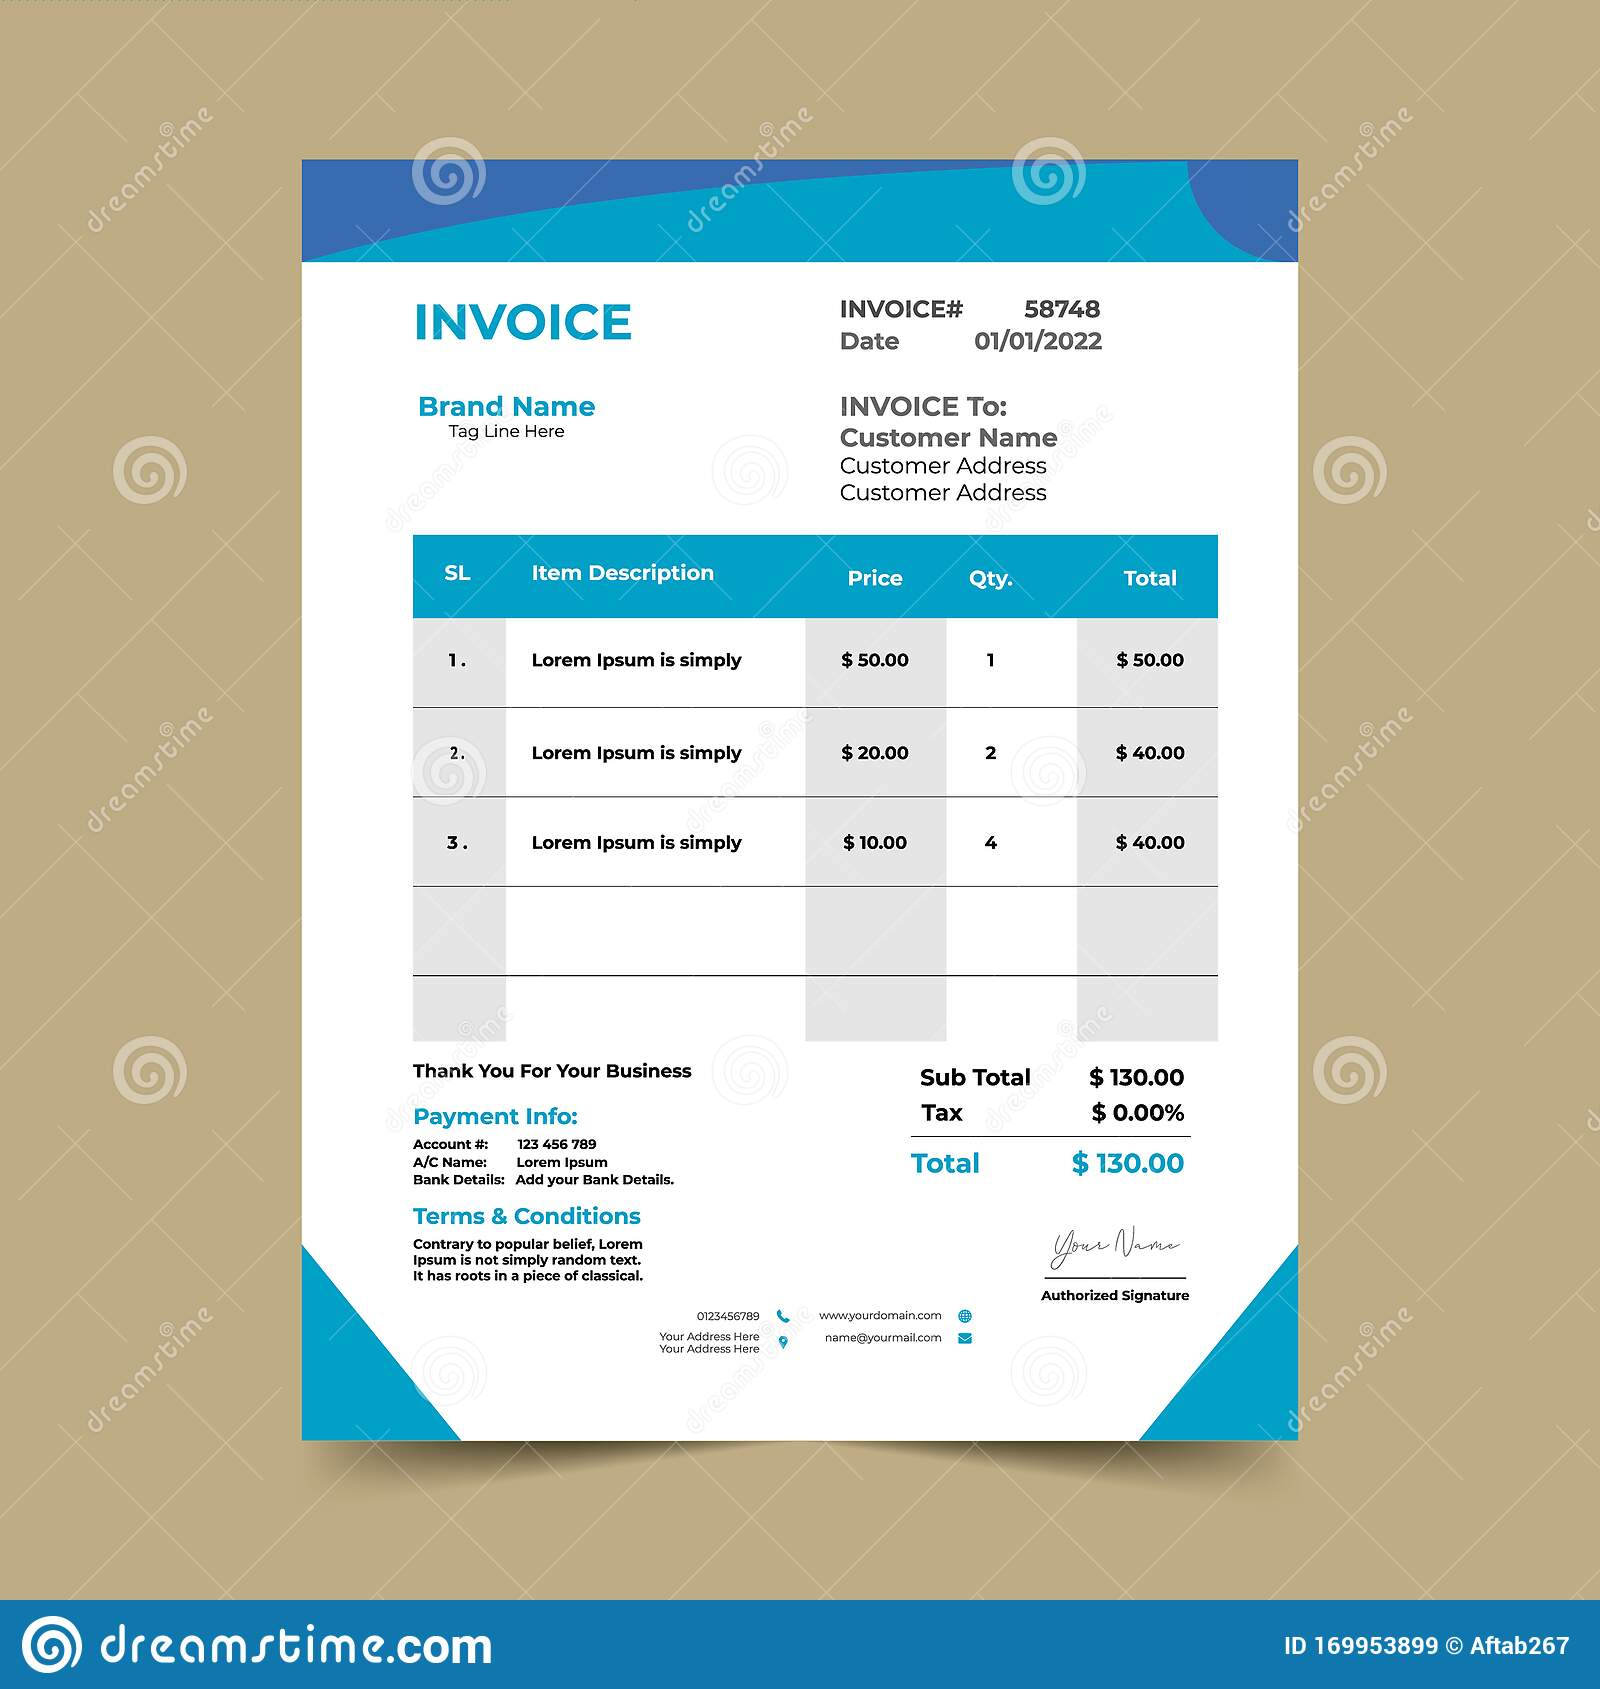 For more templates refer to our main page here.click on a template image to download the respective excel file. Blue Business Invoice Template Design Stock Vector Illustration Of Modern Excel 169953899